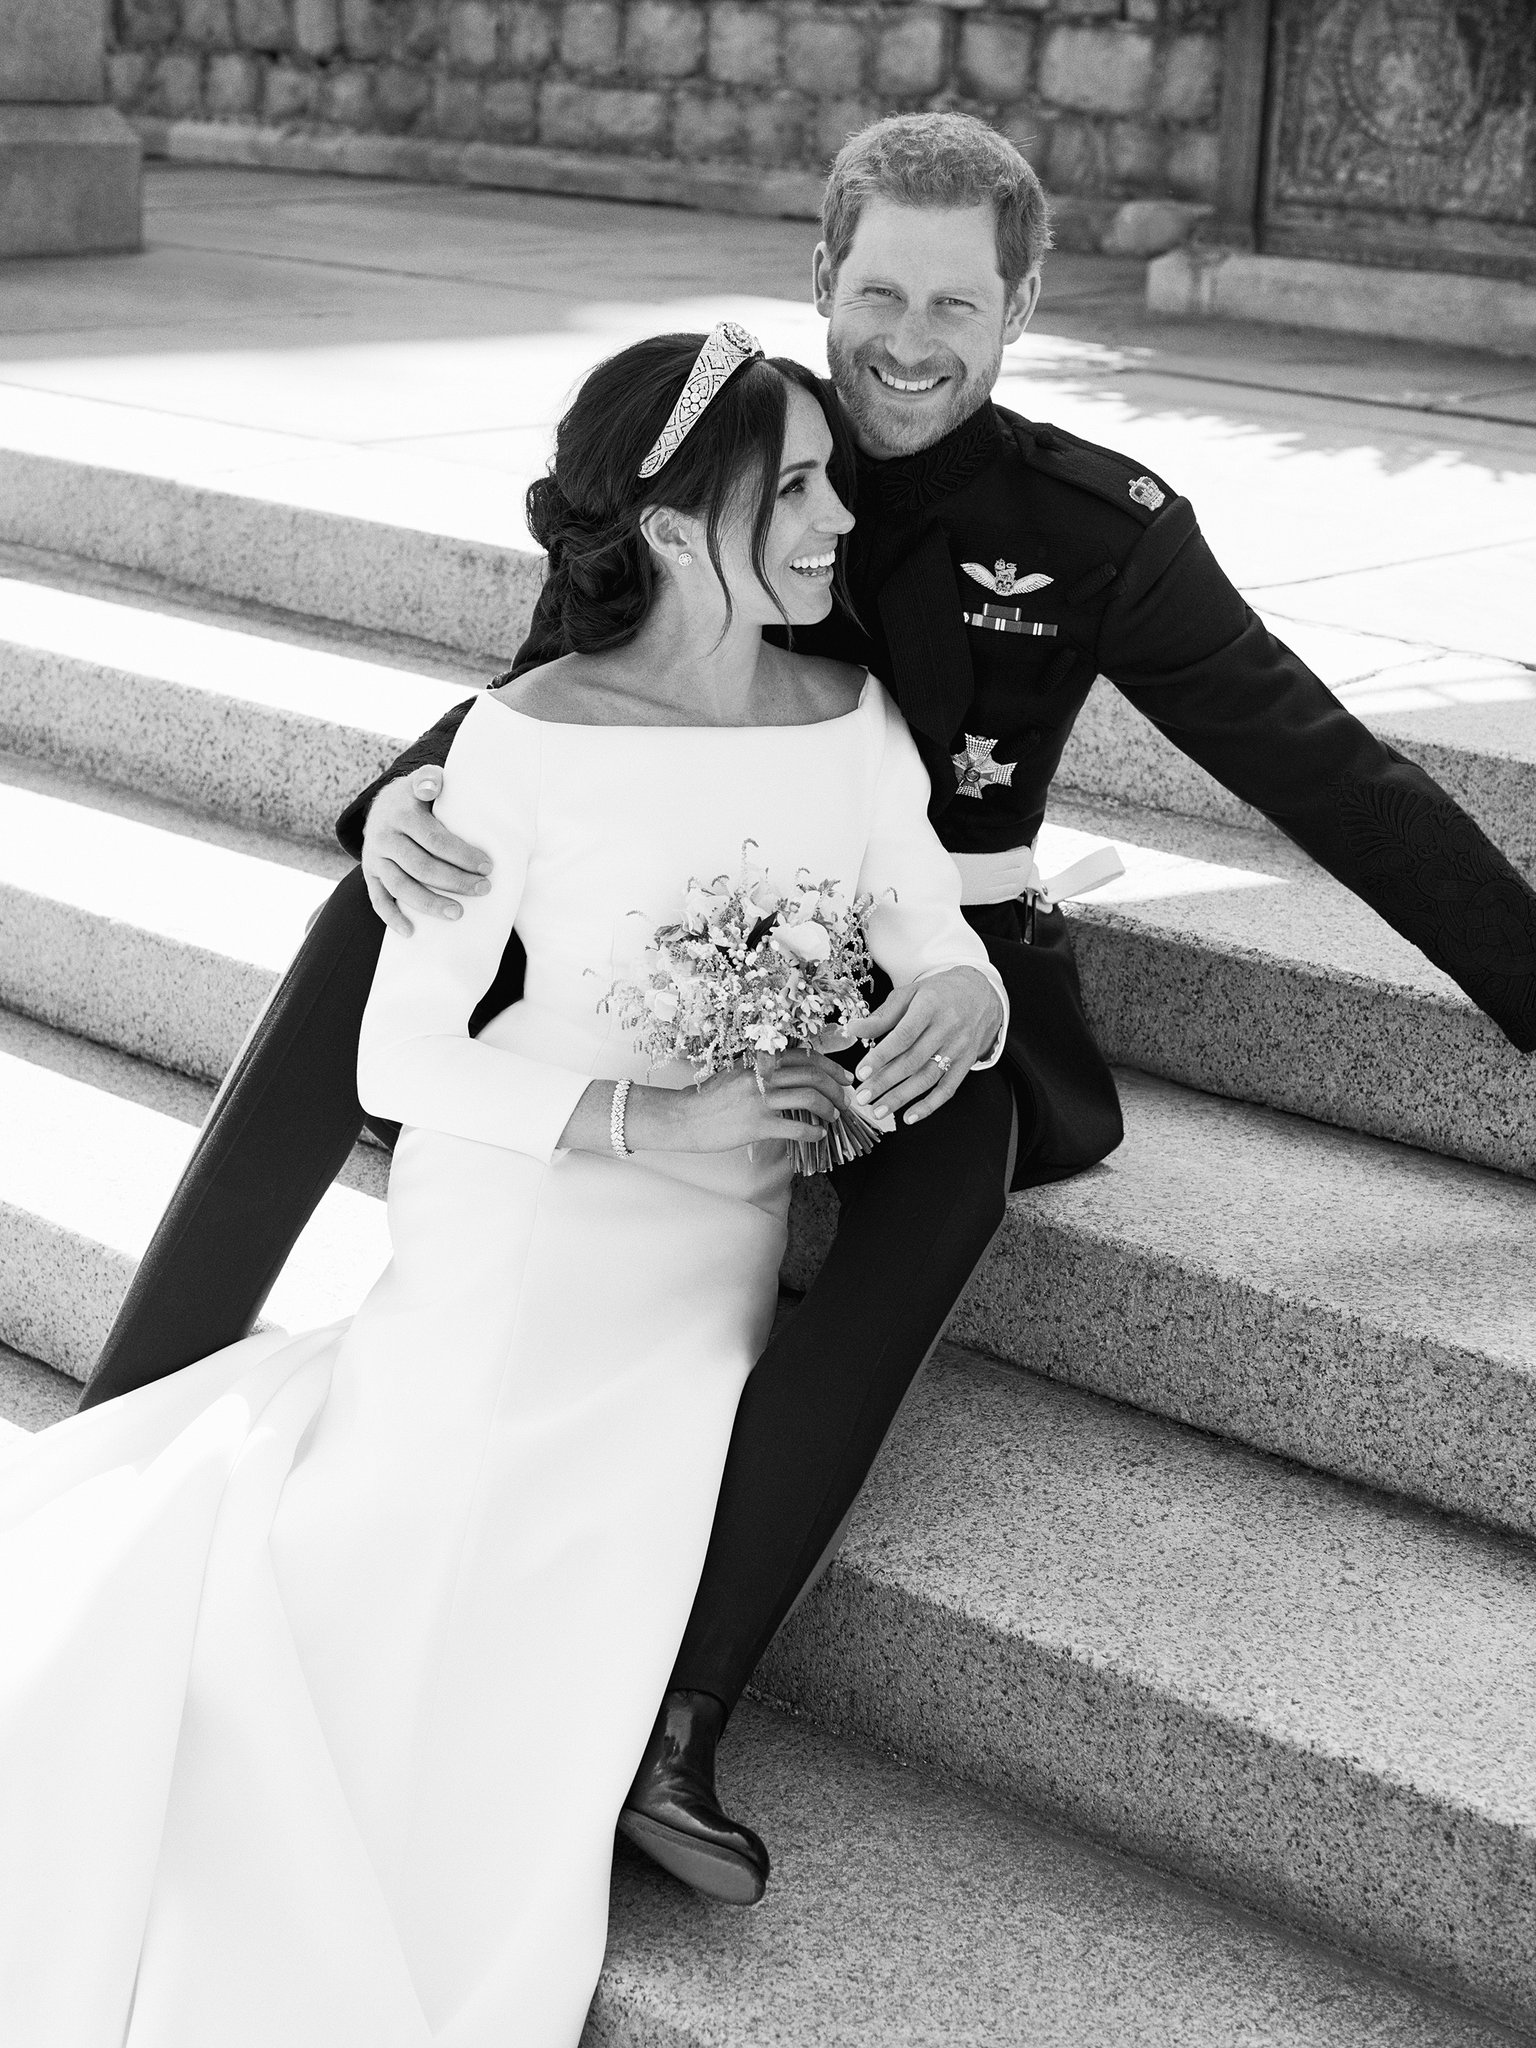 The Duke and Duchess of Sussex on the East Terrace